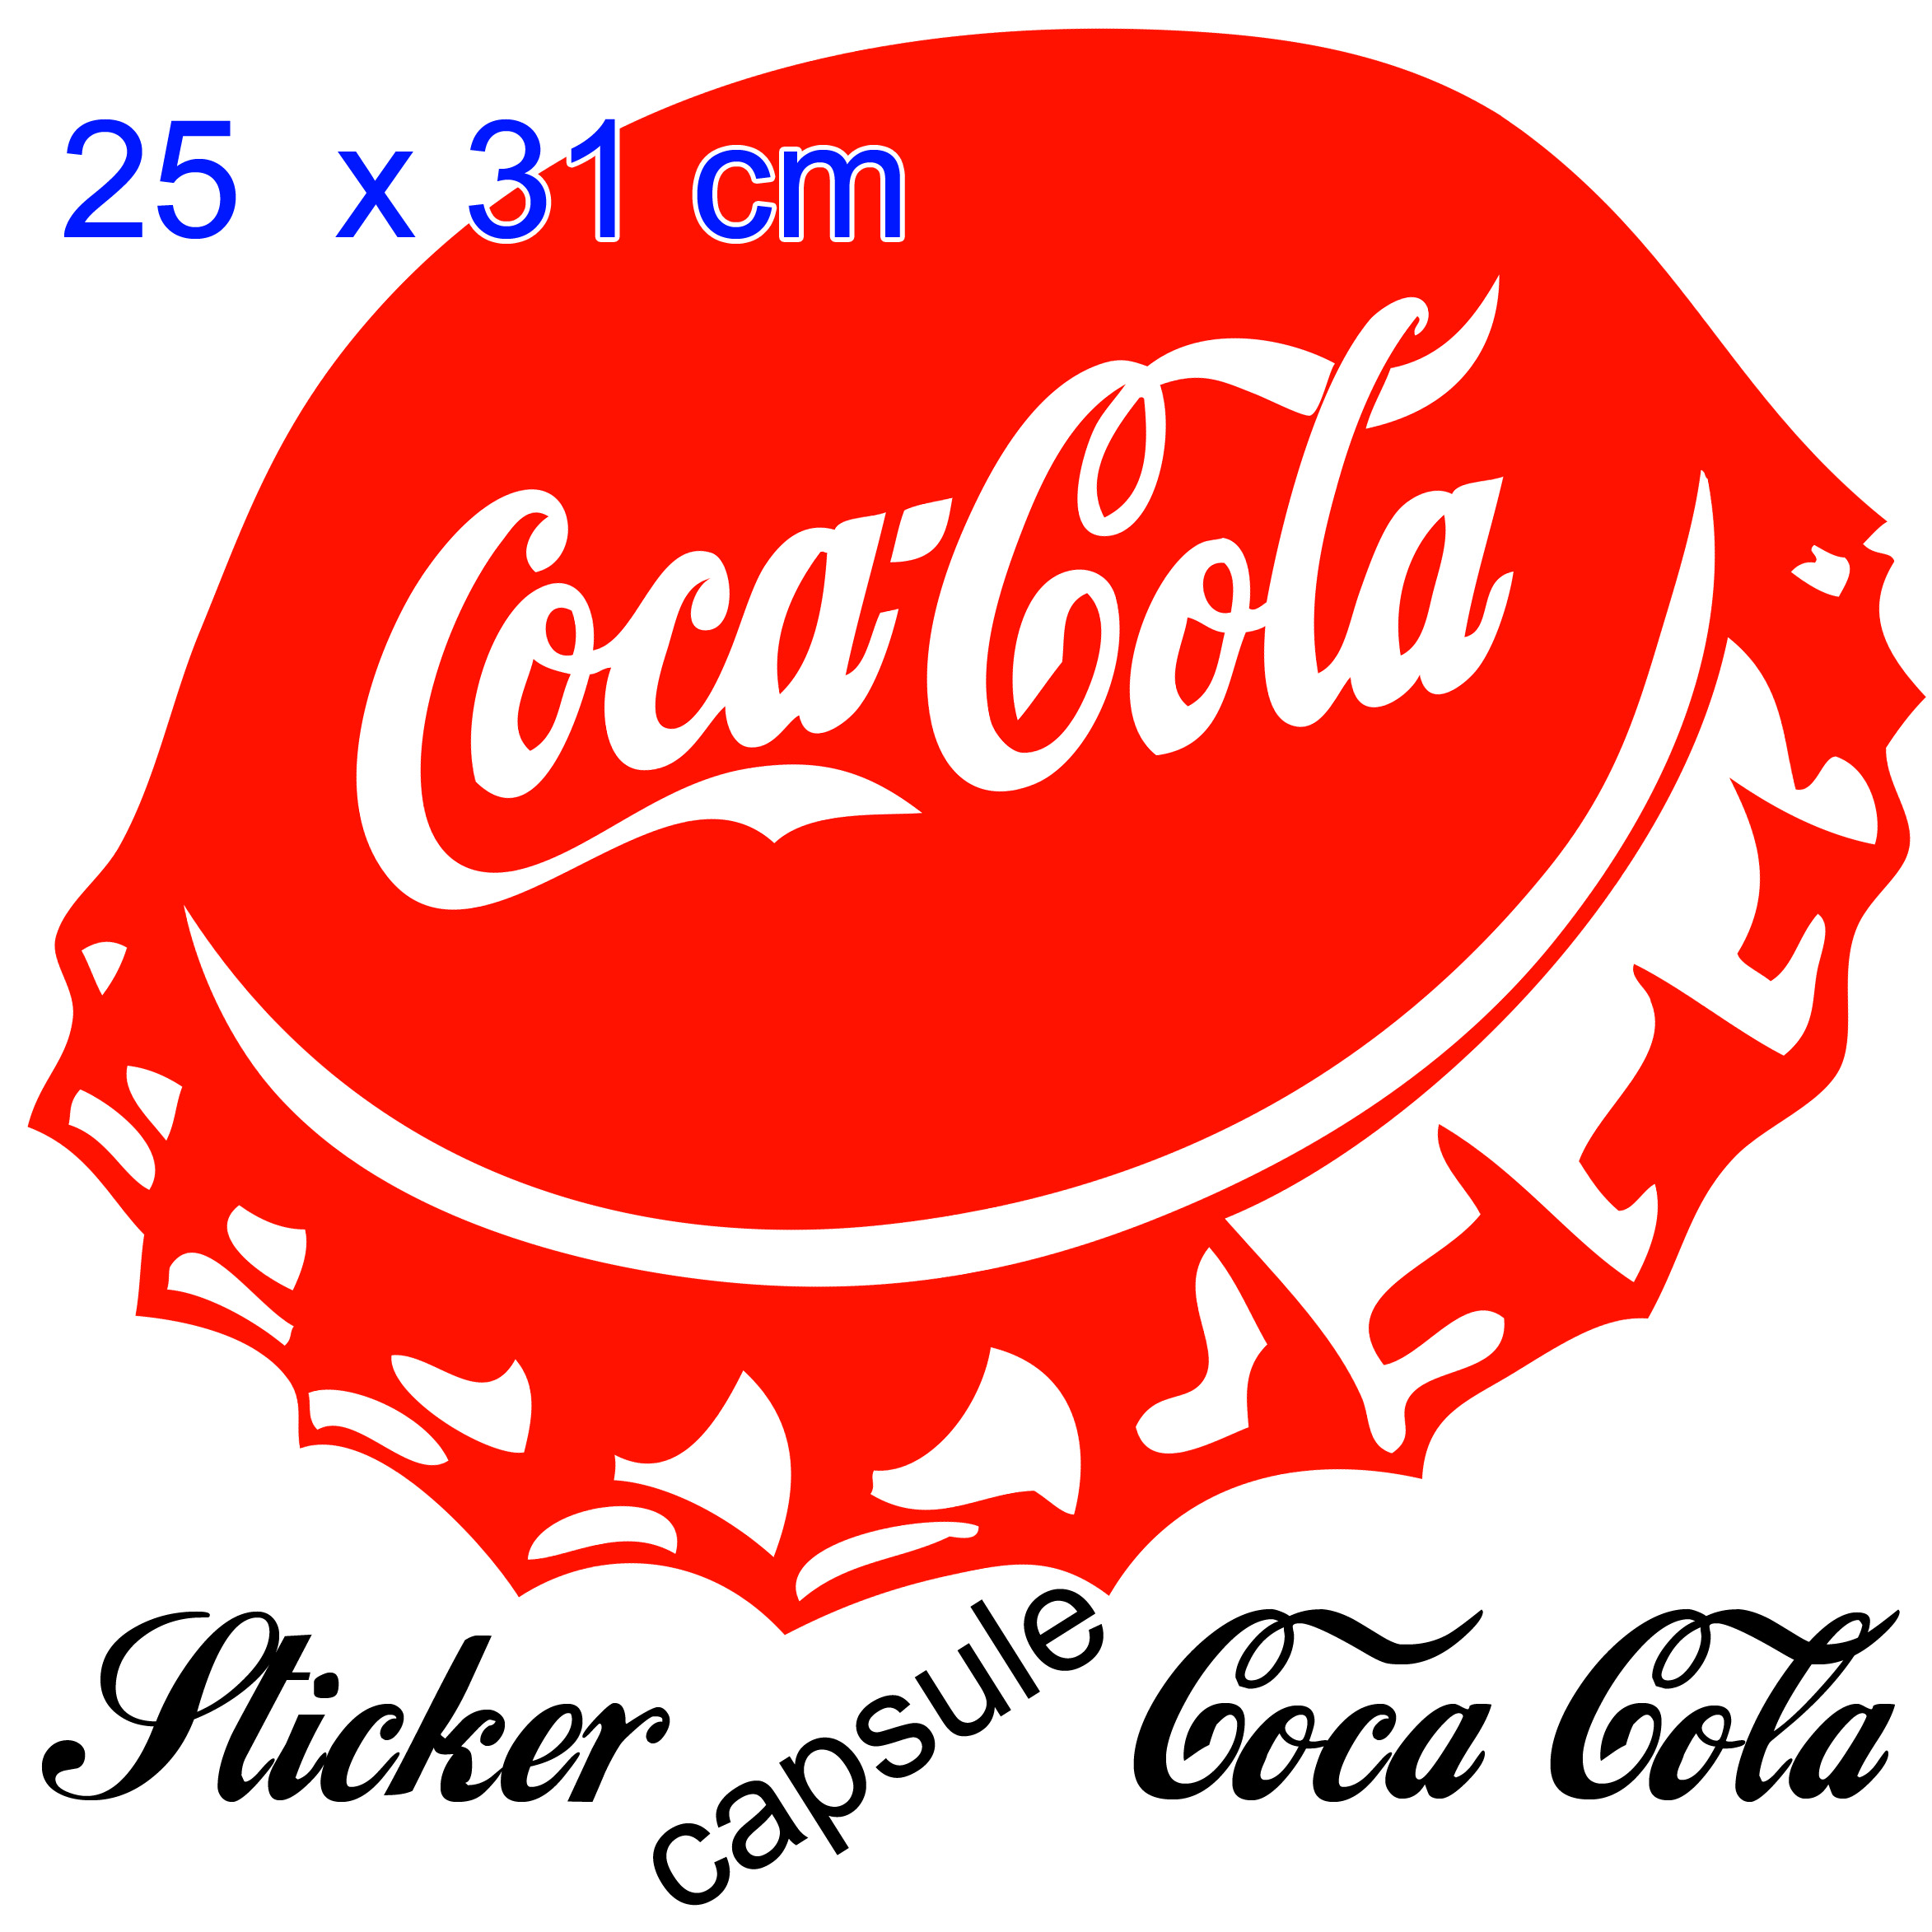 stickers autocollant coca cola capsule pour d co cuisine snack restaurant deco cuisine. Black Bedroom Furniture Sets. Home Design Ideas